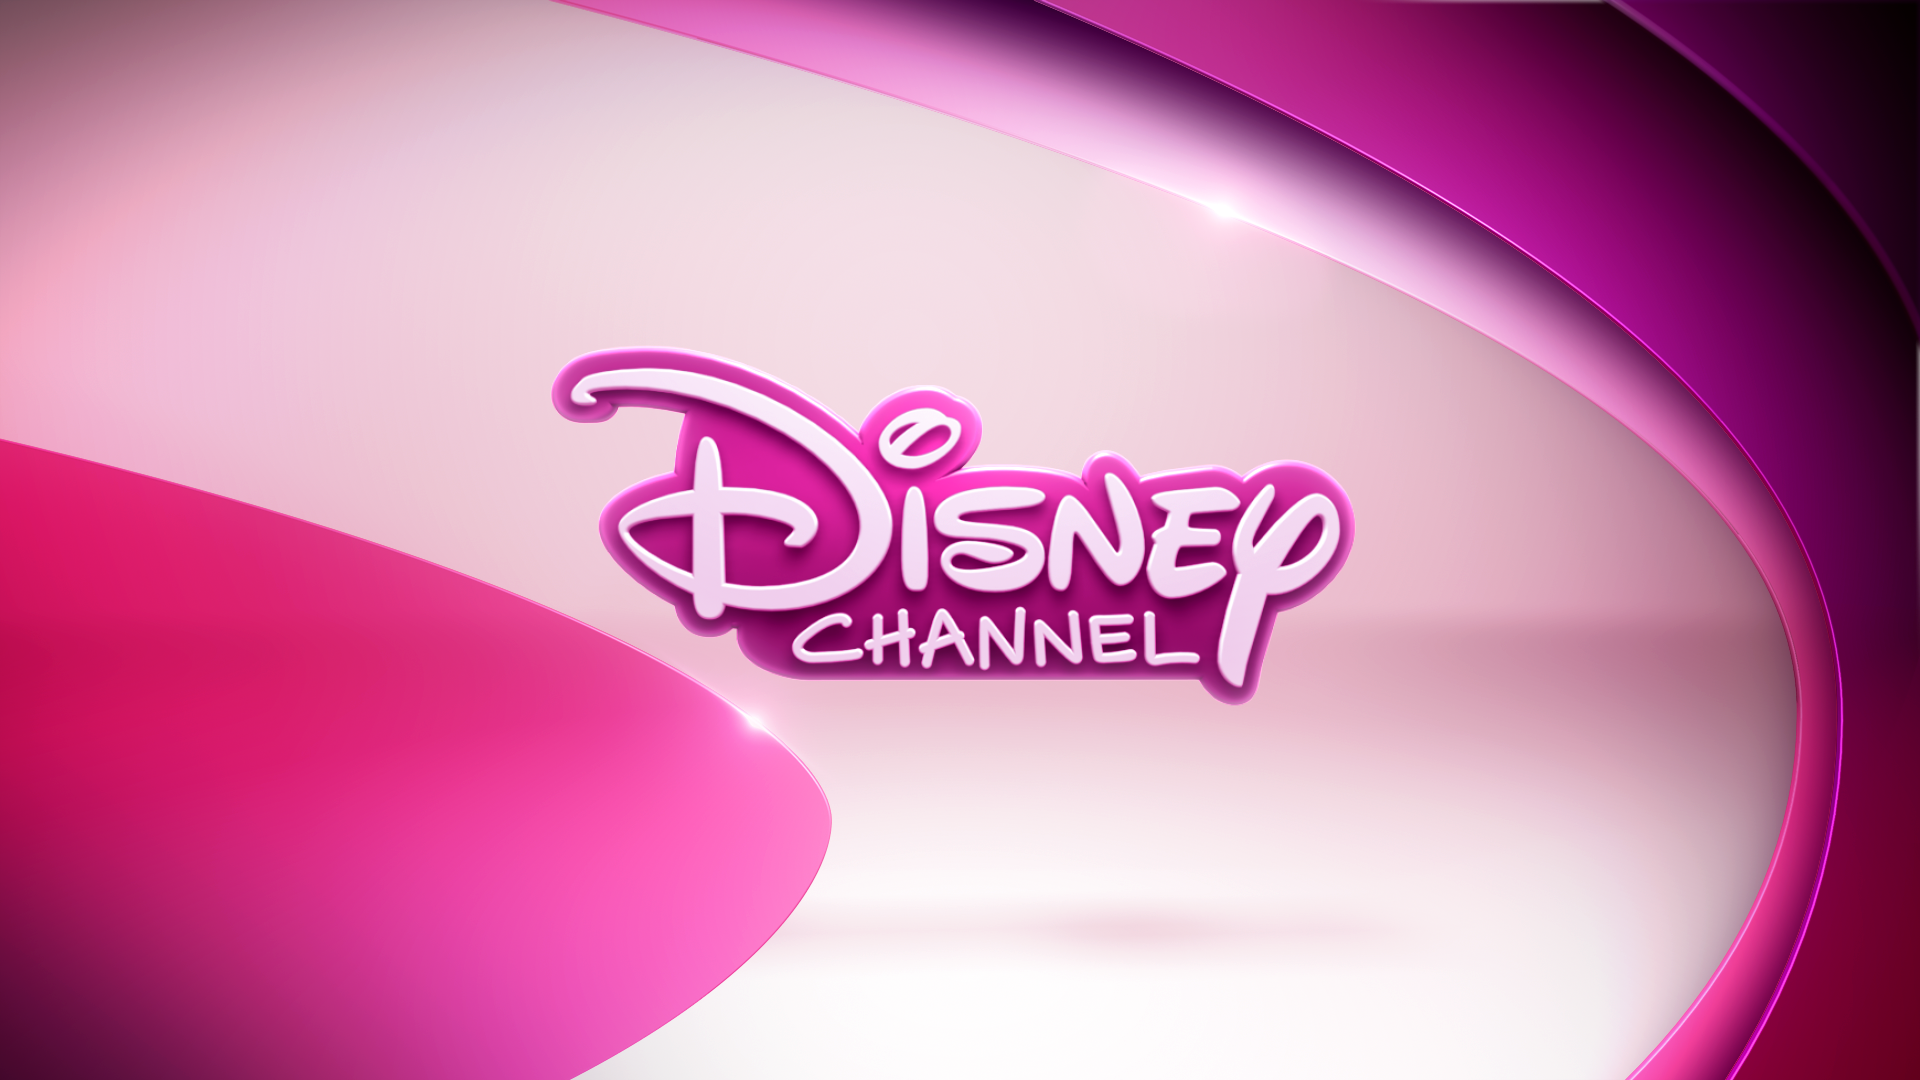 Disney Channel rebrand